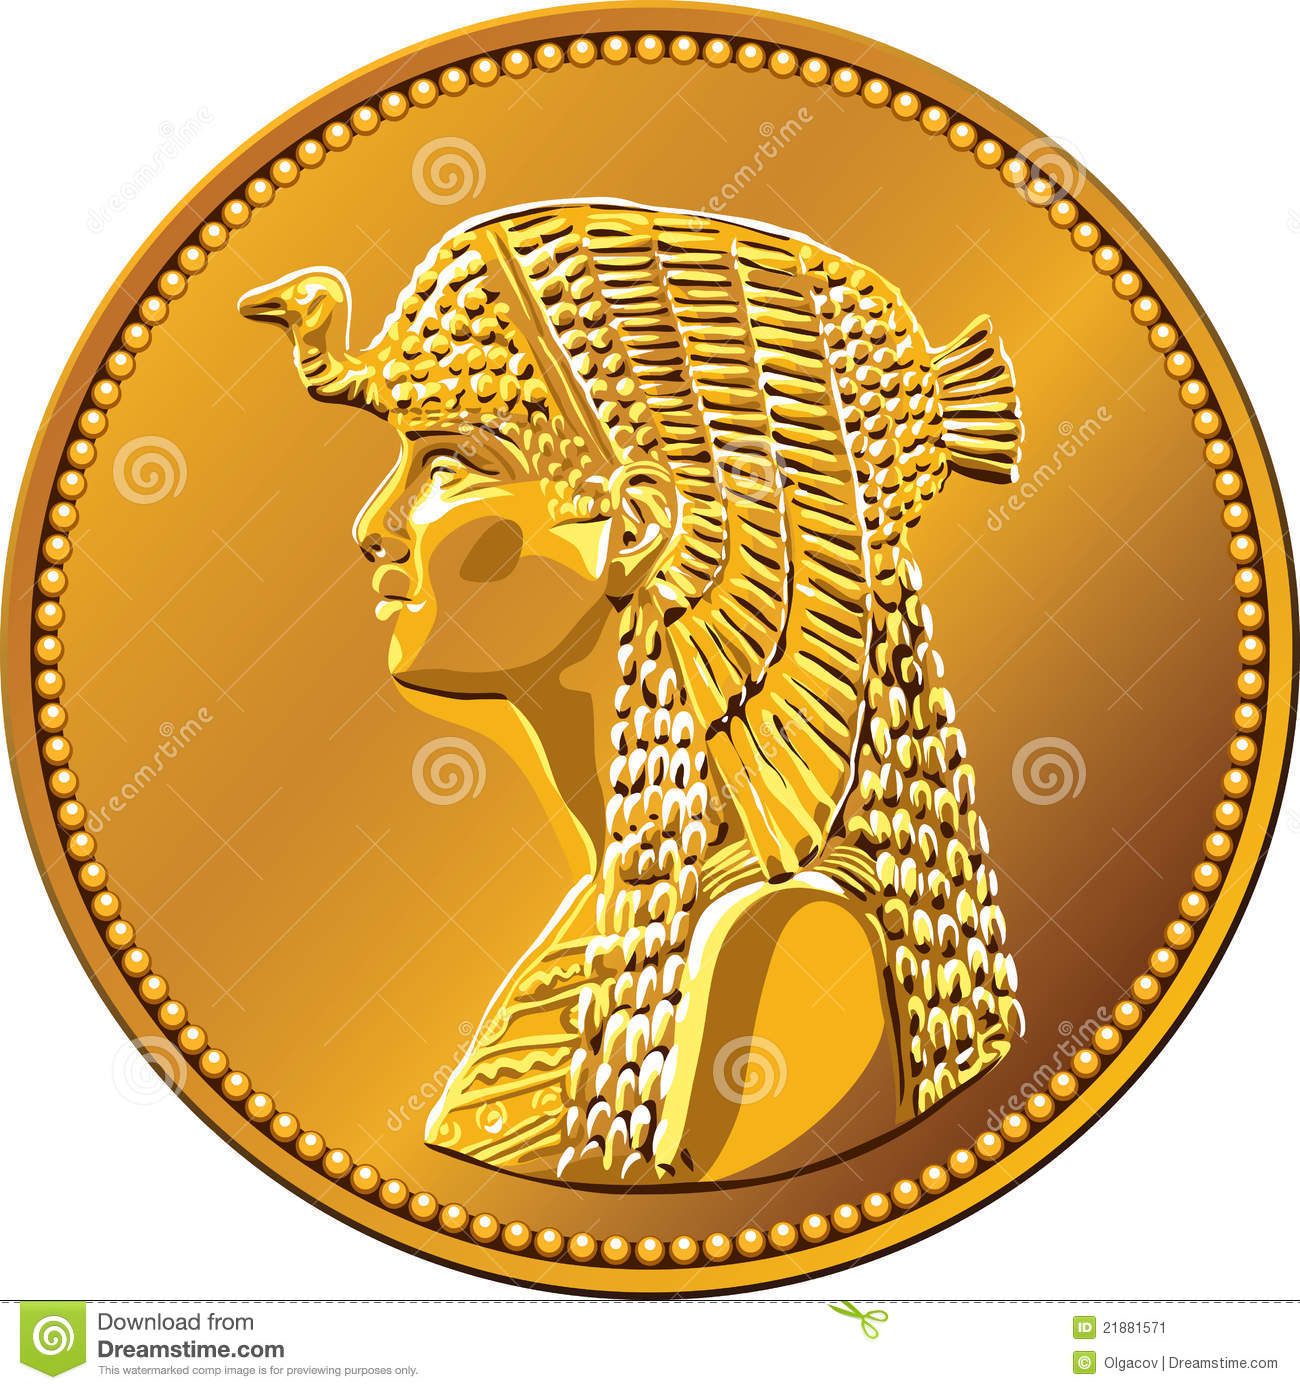 images products bank on gold egyptian img